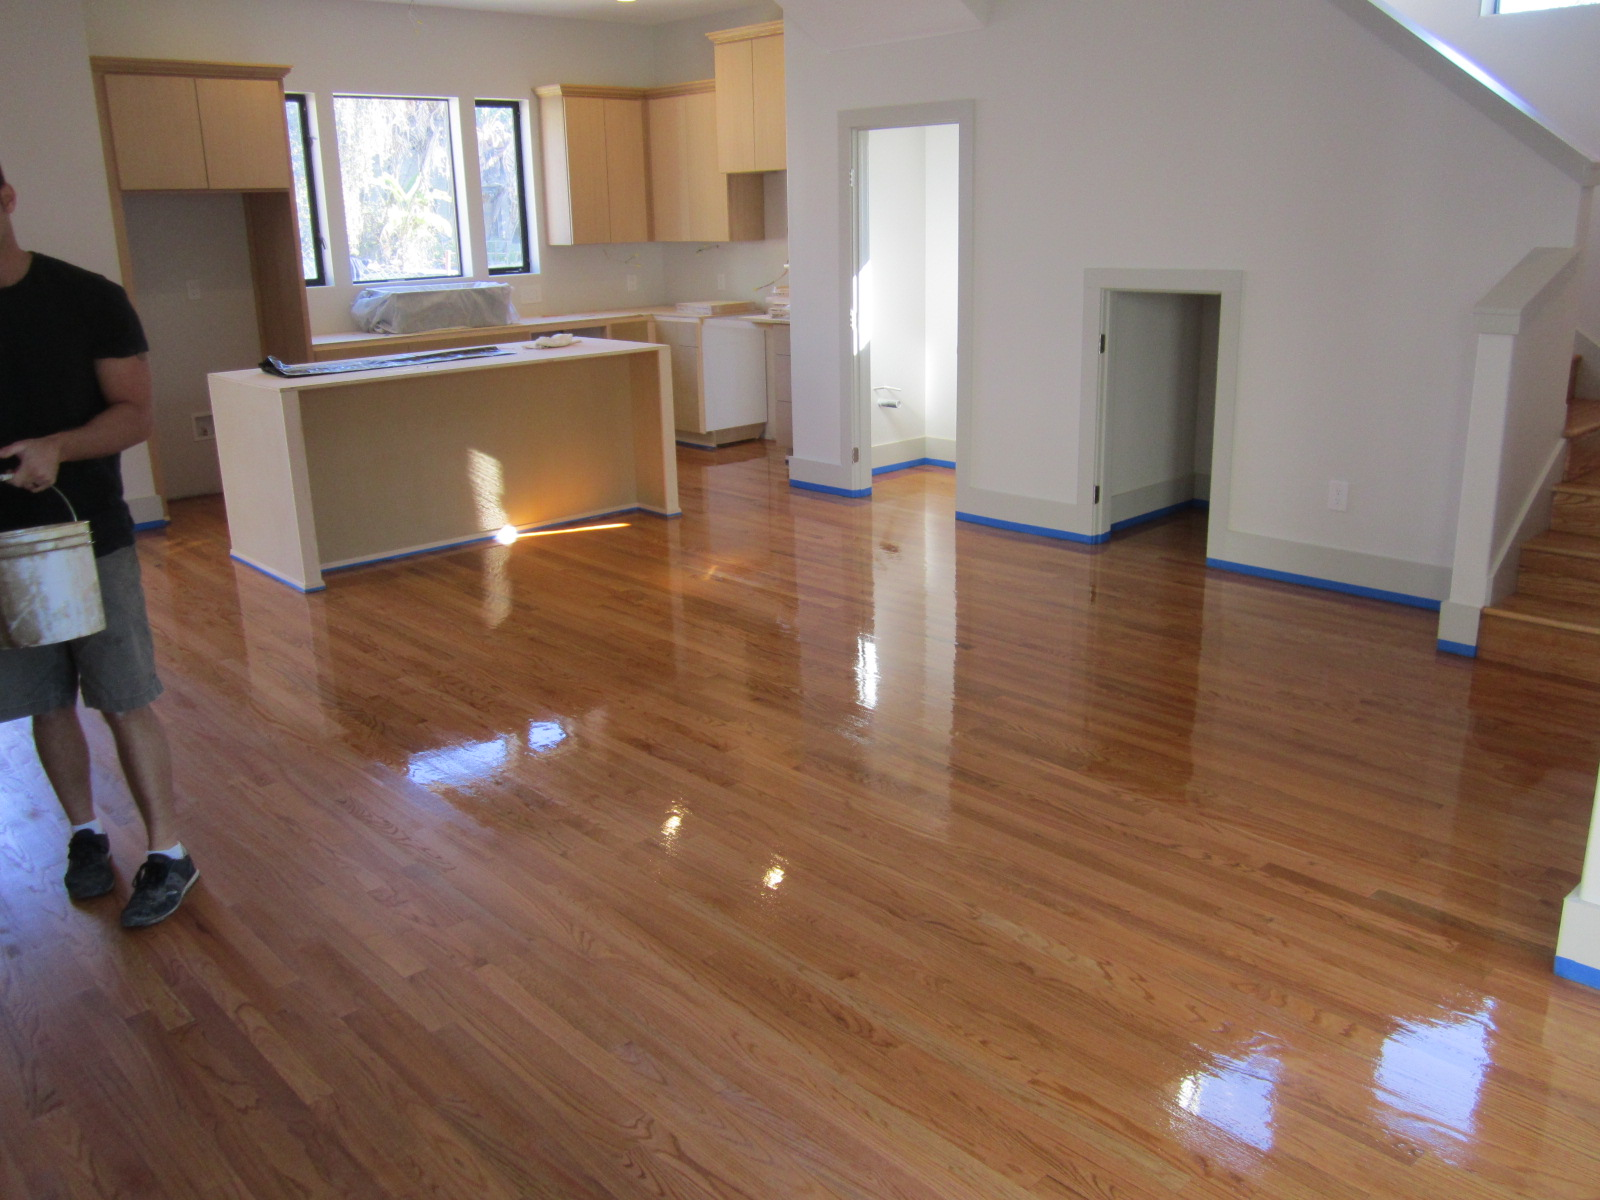 Hardwood Floor Prefinished Vs Unfinished For Kitchens